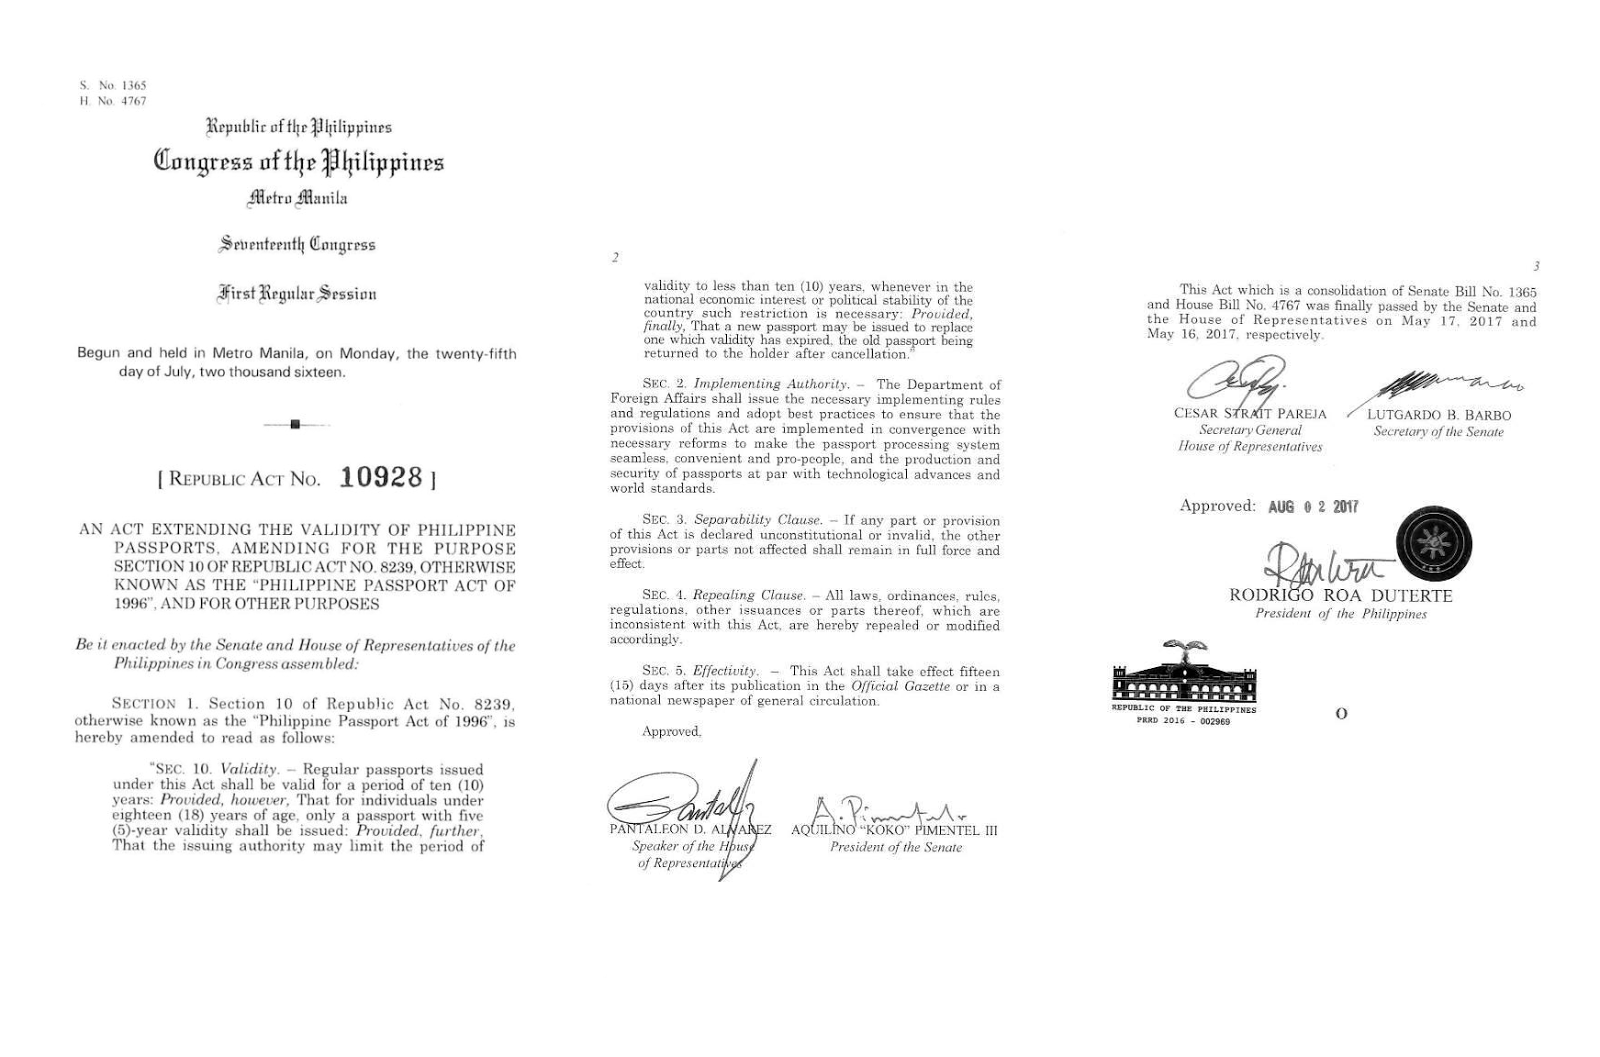 """President Rodrigo Duterte signed into law on Wednesday Republic Act 10928 extending the validity of Philippine passports to 10 years. The new law states that """"Regular passports under this act shall be valid for a period of 10 years. Provided, however, that for individuals under 18 years of age, only a passport with five-year validity shall be issued.""""  Republic Act 10928 amends Republic Act 8239 or the Philippine Passport Act of 1996.  The new law also states that the issuing authority may limit the validity to less than 10 years in cases where national economic interest or political stability is at stake.  But do not get excited that the Department of Foreign Affairs will issue passports with longer validities soon. The DFA has to prepare the implementing rules and regulations of RA 10928 first, to ensure that its provisions will be implemented.  The President also signed Republic Act 10930, which extends the length of the driver's license's validity to 5 years. The law amends Section 23 of RA 4136 or the Land Transportation and Traffic Code, which set a three-year validity for the license.  """"Except for student permits, all drivers' licenses shall be valid for five years reckoned from the birth date of the licensee, unless sooner revoked or suspended,"""" the new law says.  Under the law's Section 23, a driver holding a license with a 5-year validity may even be granted a license with a 10-year validity upon renewal if found that he or she has """"not committed any violation of RA 4136 and other traffic laws, rules and regulations.""""  The law also mandates the establishment of stricter rules before the issuance of driver's licenses.  A fine of P20,000 shall be imposed on a driver's license applicant if found to have misrepresented material information in his or her application, connived with the officer in the irregular conduct of examinations or issuance of license, falsified documents, or cheated during examinations.  Both laws will be enforced and take effect  take eff"""